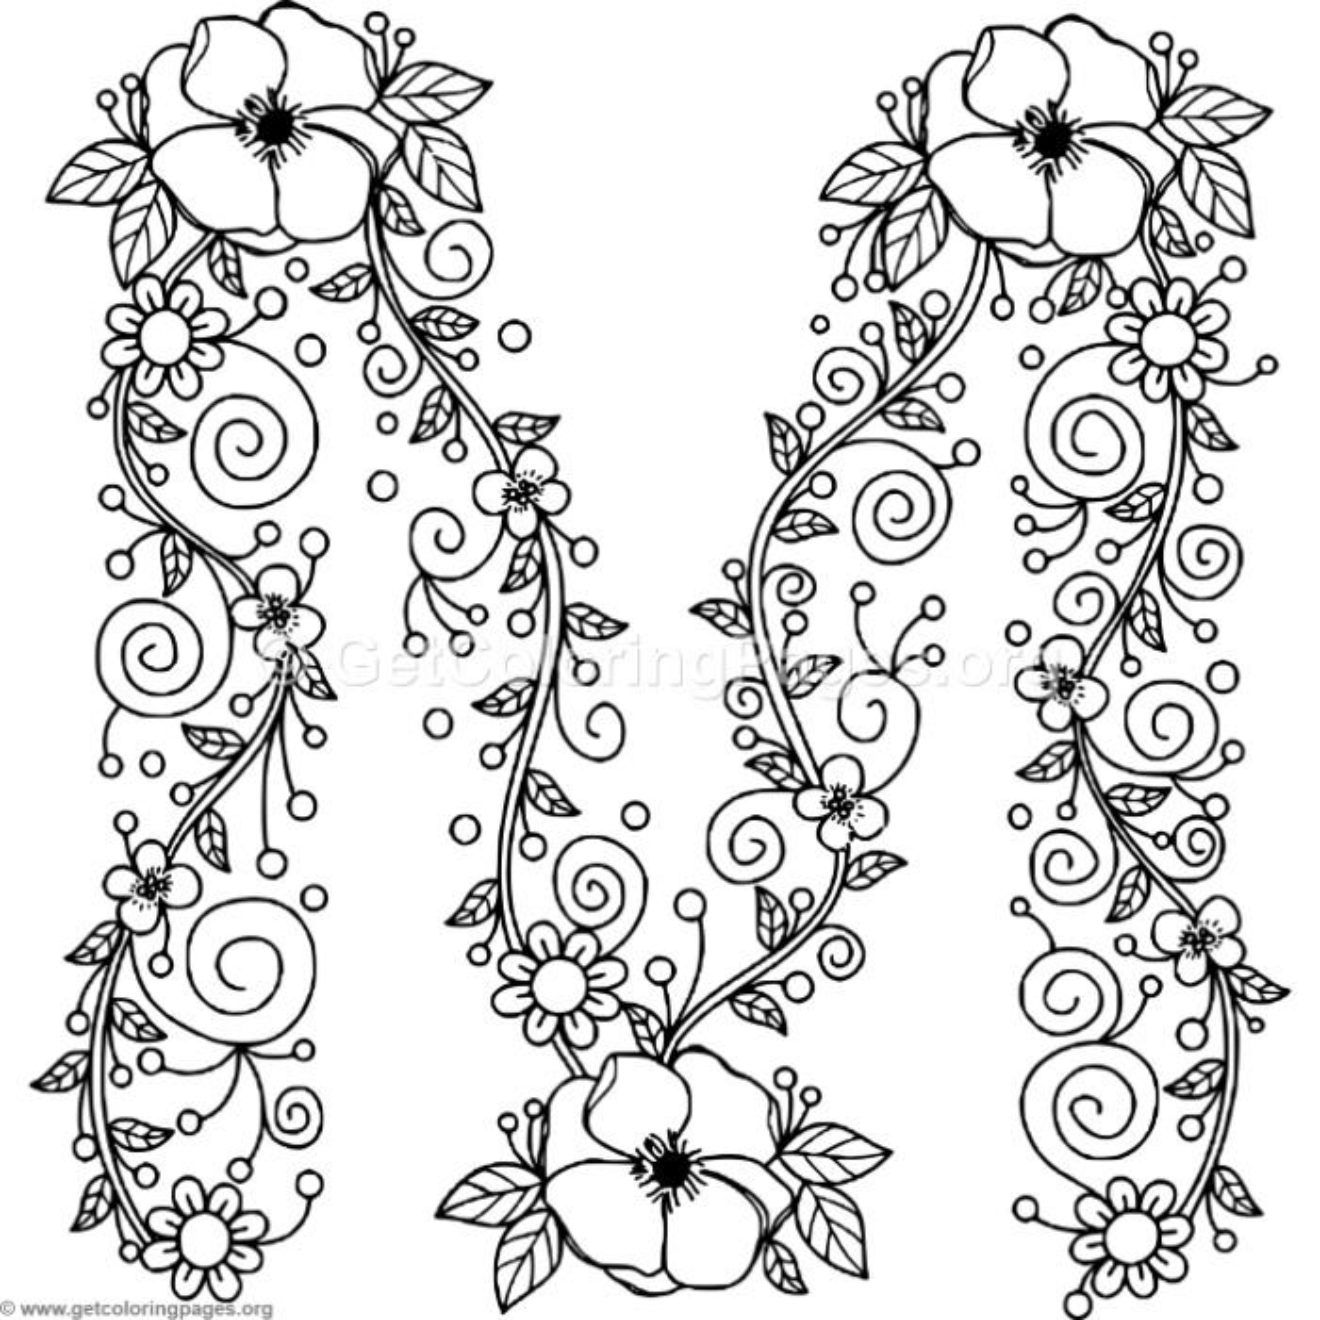 Floral Alphabet Coloring Pages Page 2 Getcoloringpages